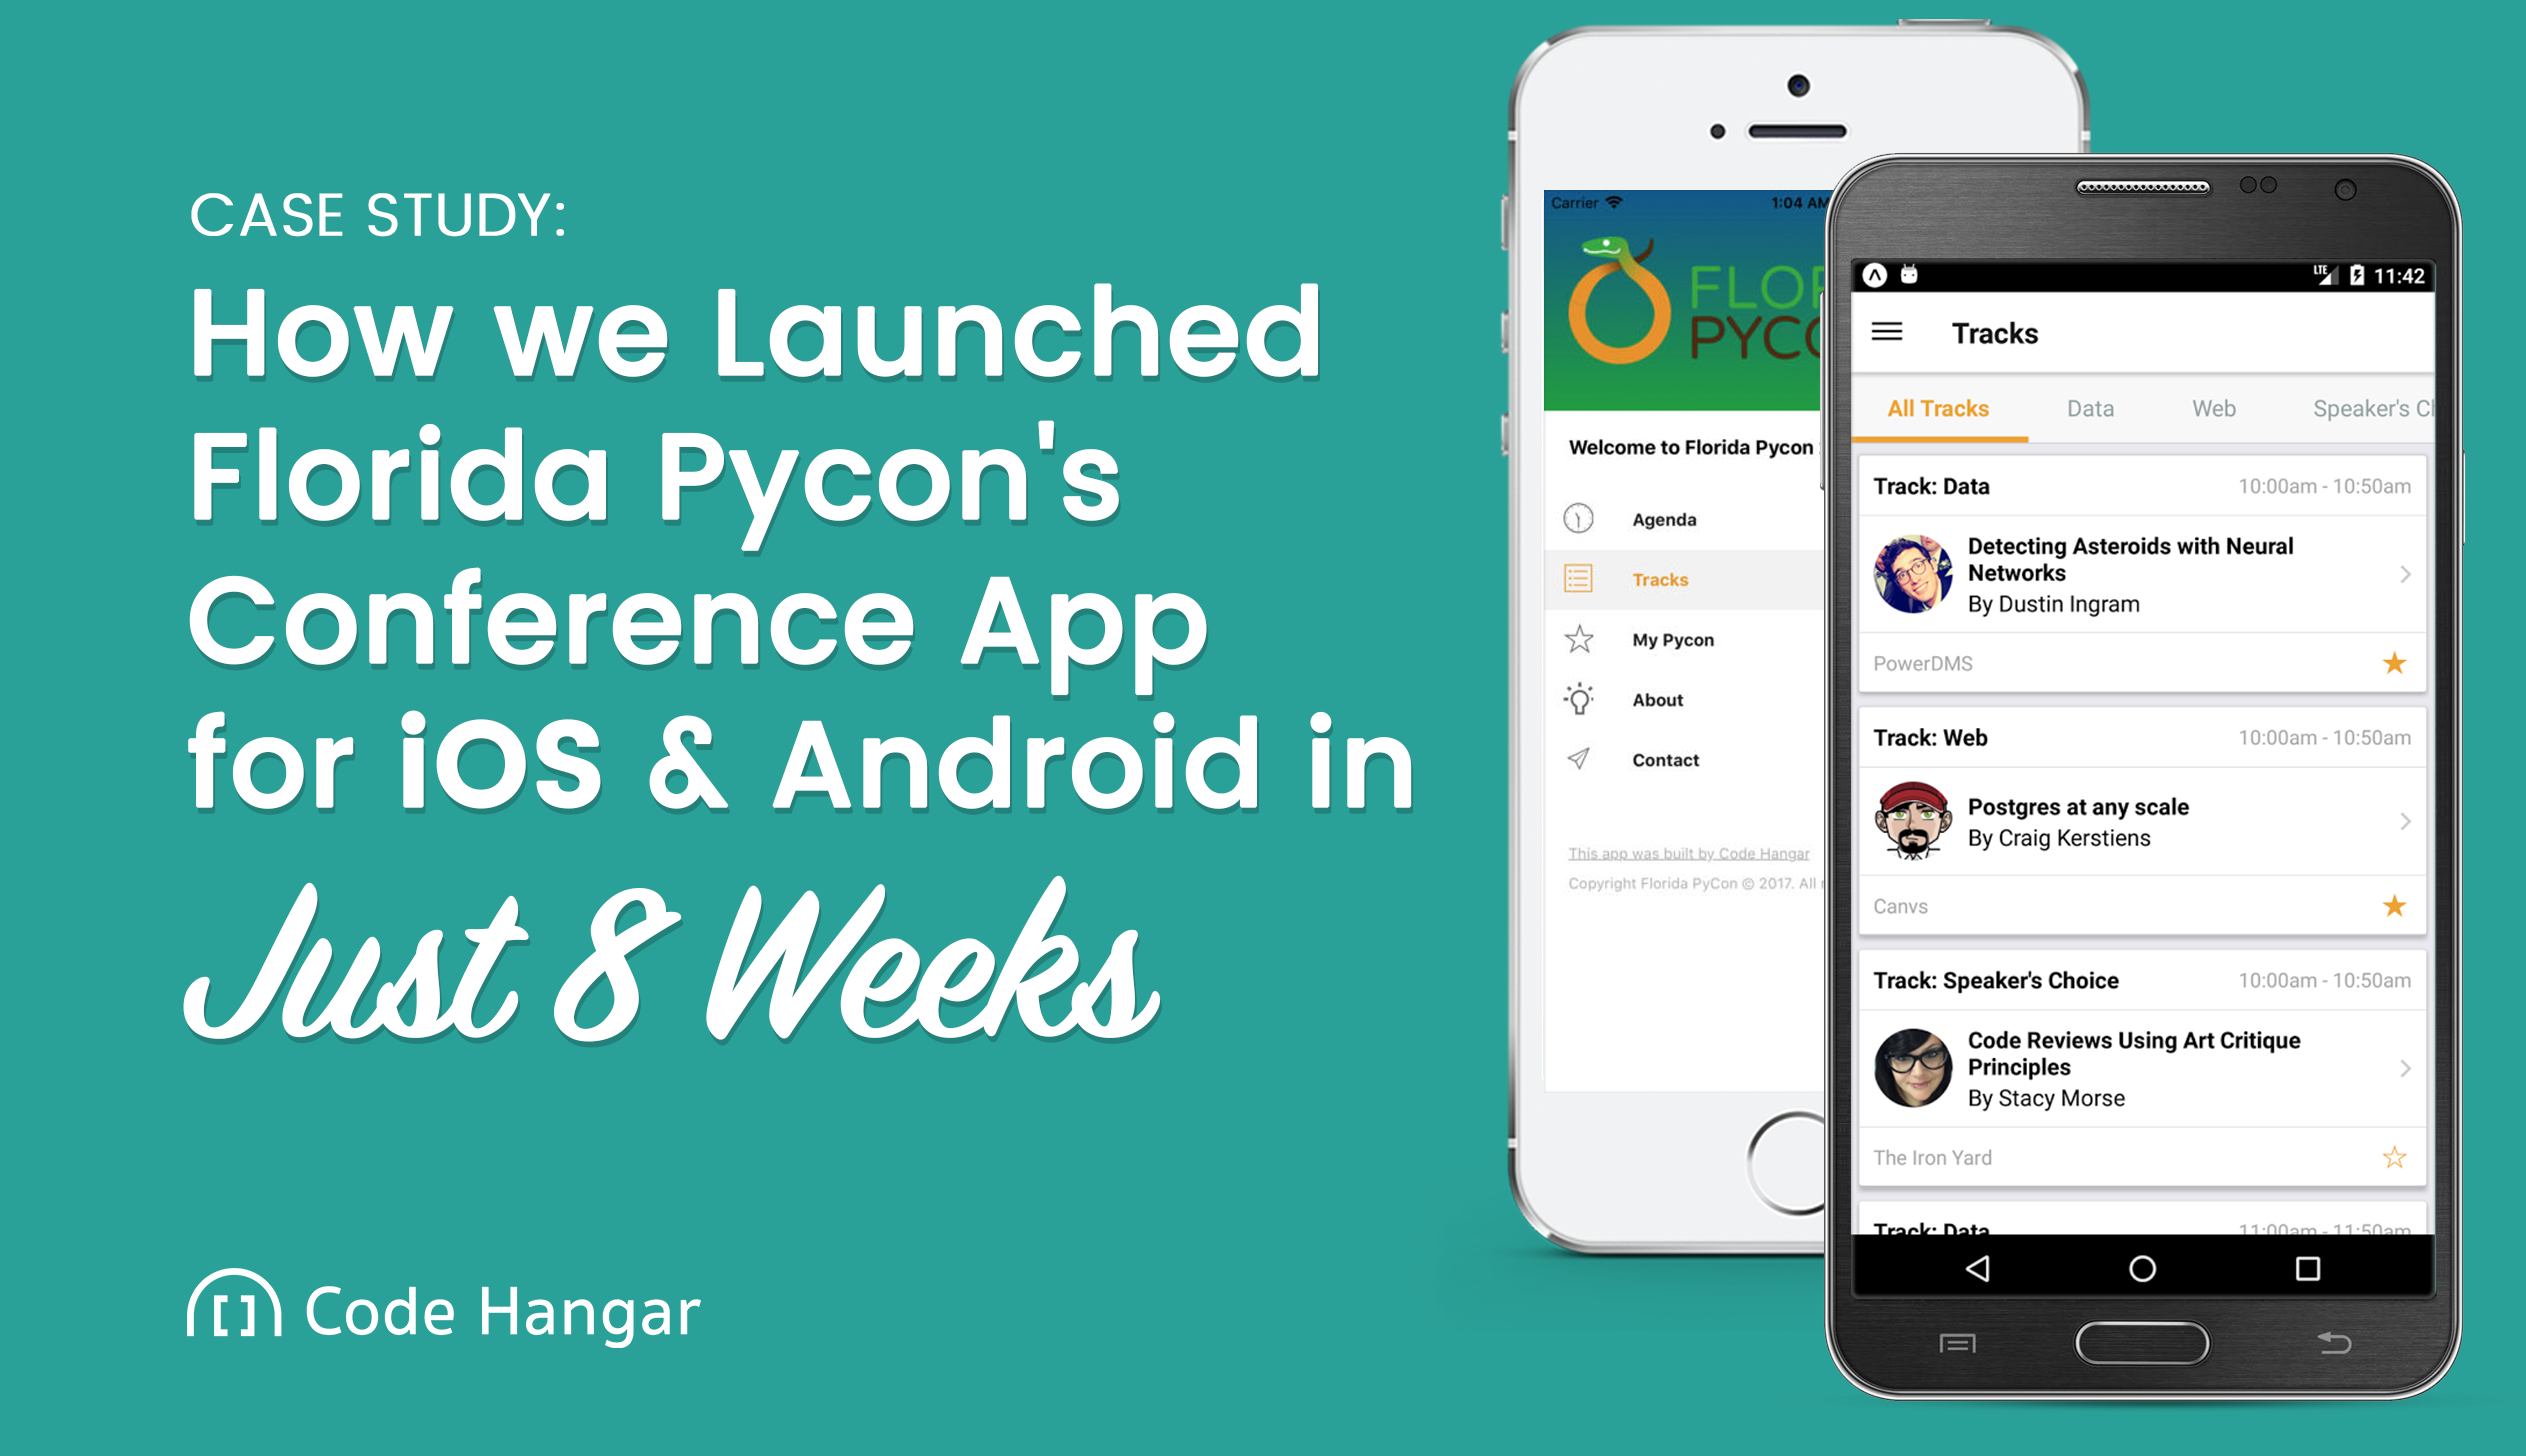 How we Launched Florida Pycon's Conference App for iOS and Android in Just 8 Weeks